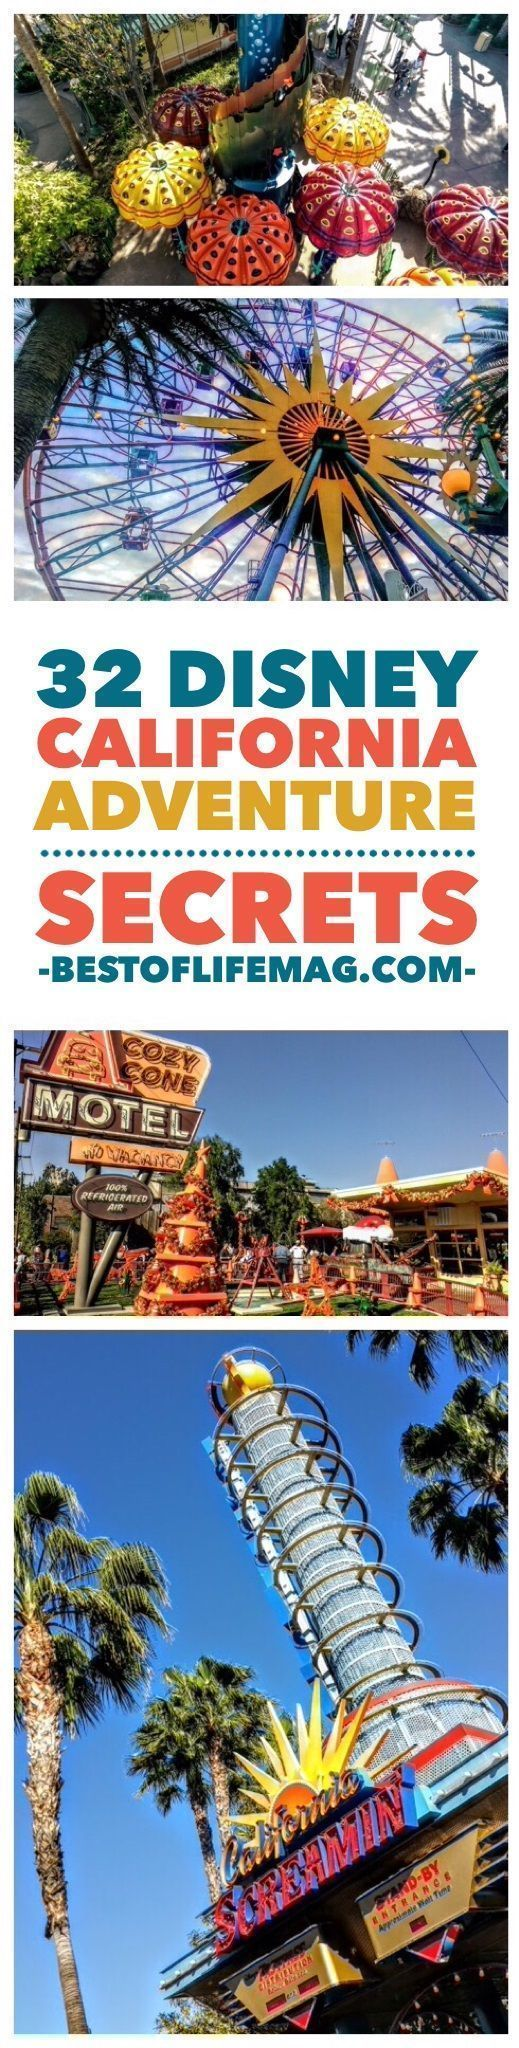 32 California Adventure Secrets at Disneyland Resort - The Best of Life Magazine